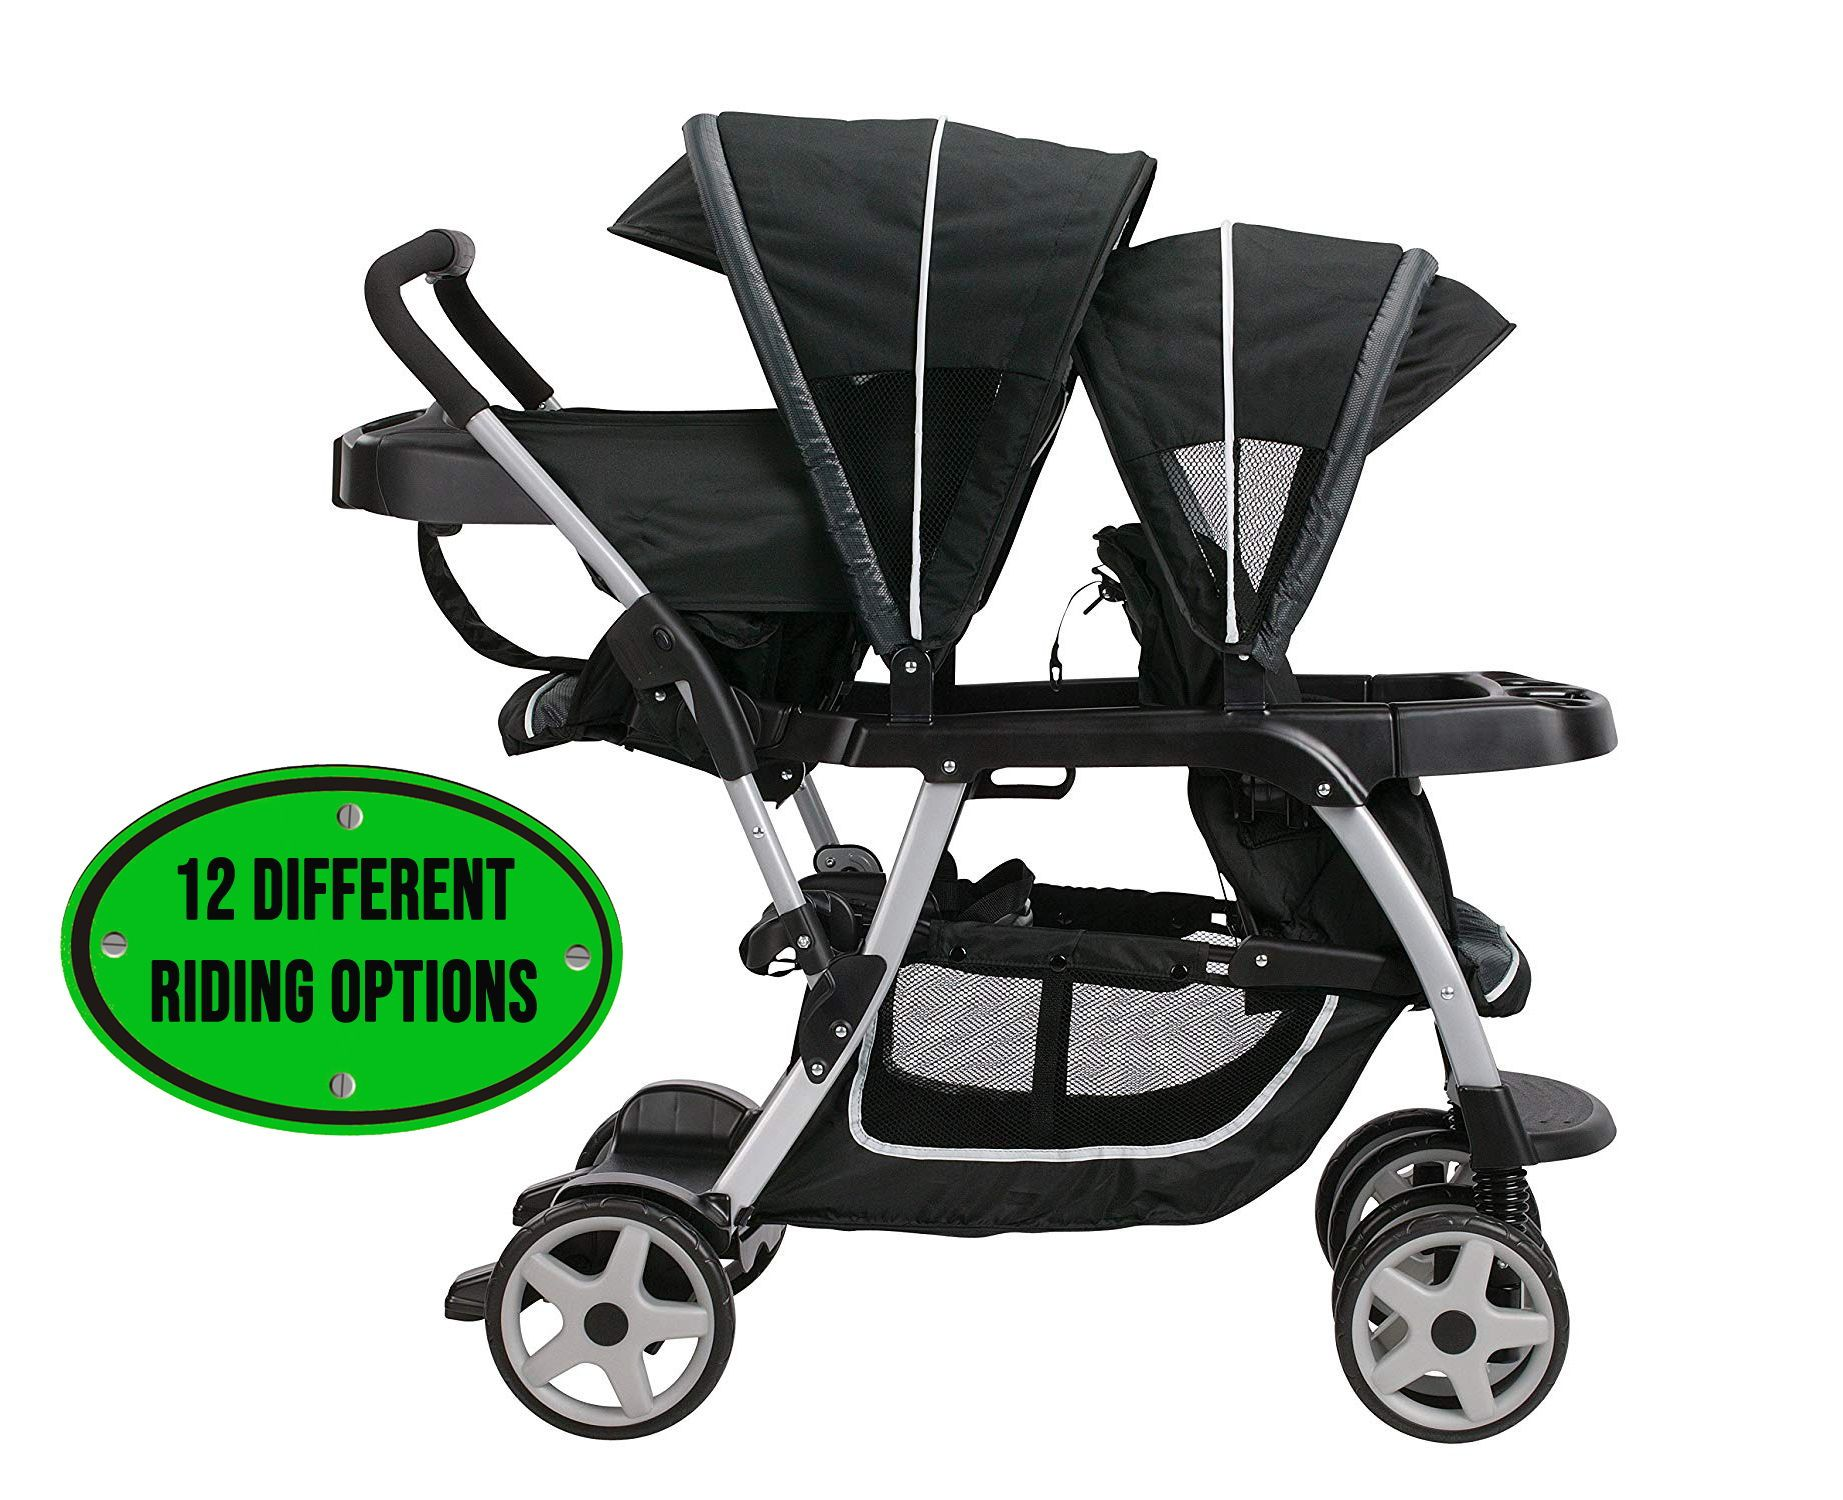 Graco Ready2Grow LX Double Stroller for Infant and Toddler